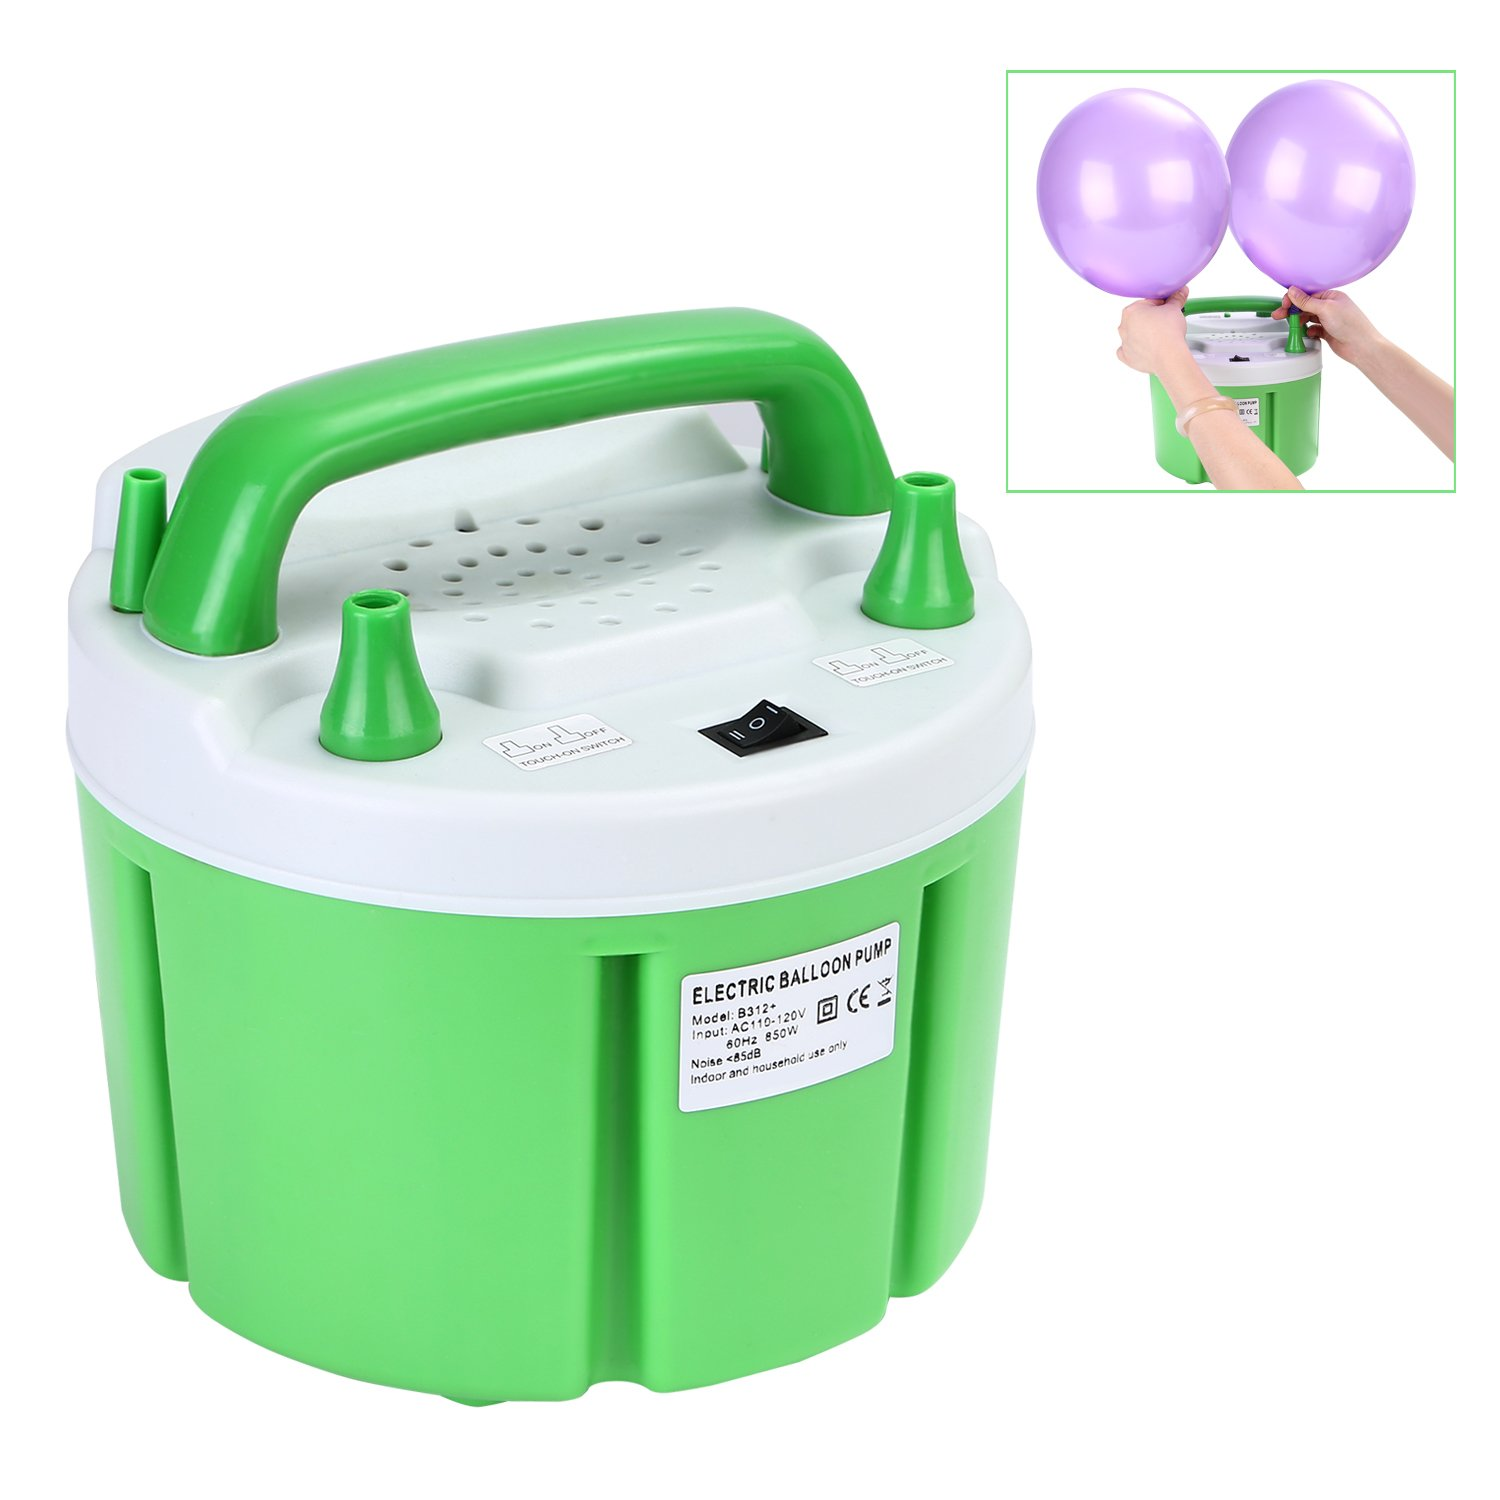 Maddott Electric Balloon Blower Pump Automatic Inflator 110V 850W 24000pa for Wedding Party Holiday Decoration, Green